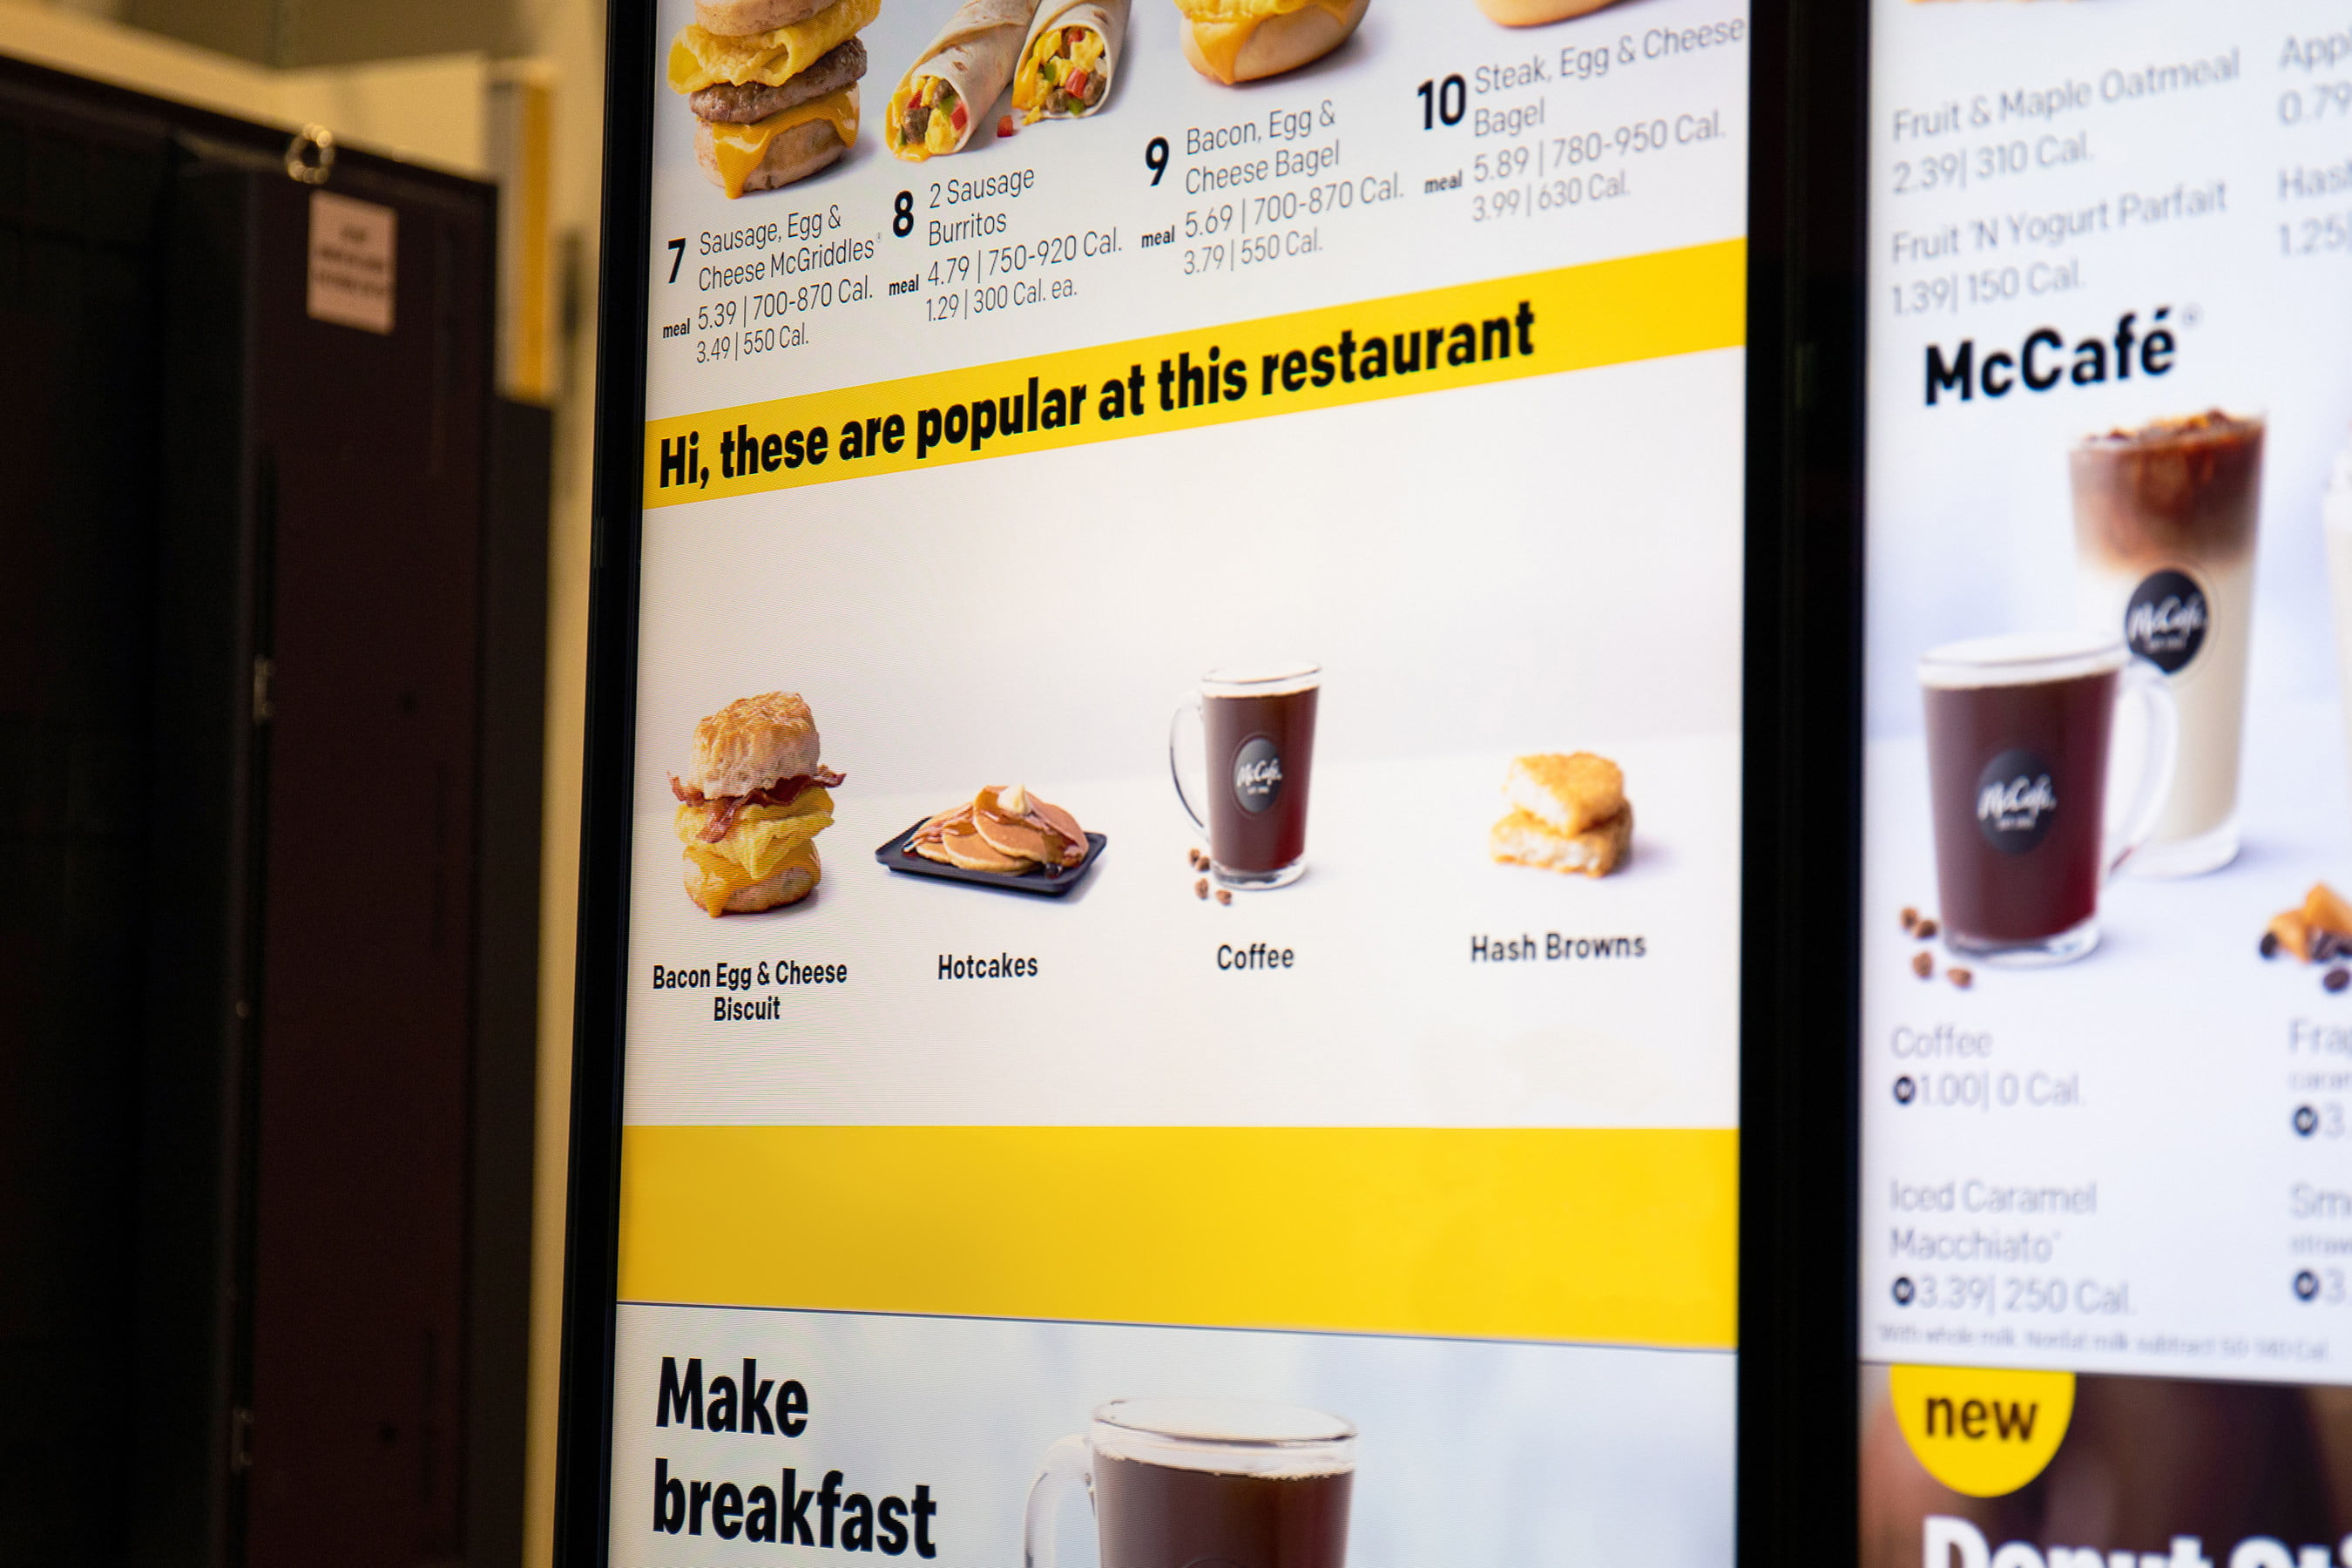 McDonald's Uses A.I. To Tempt You Into Extra Purchases At The Drive-Thru